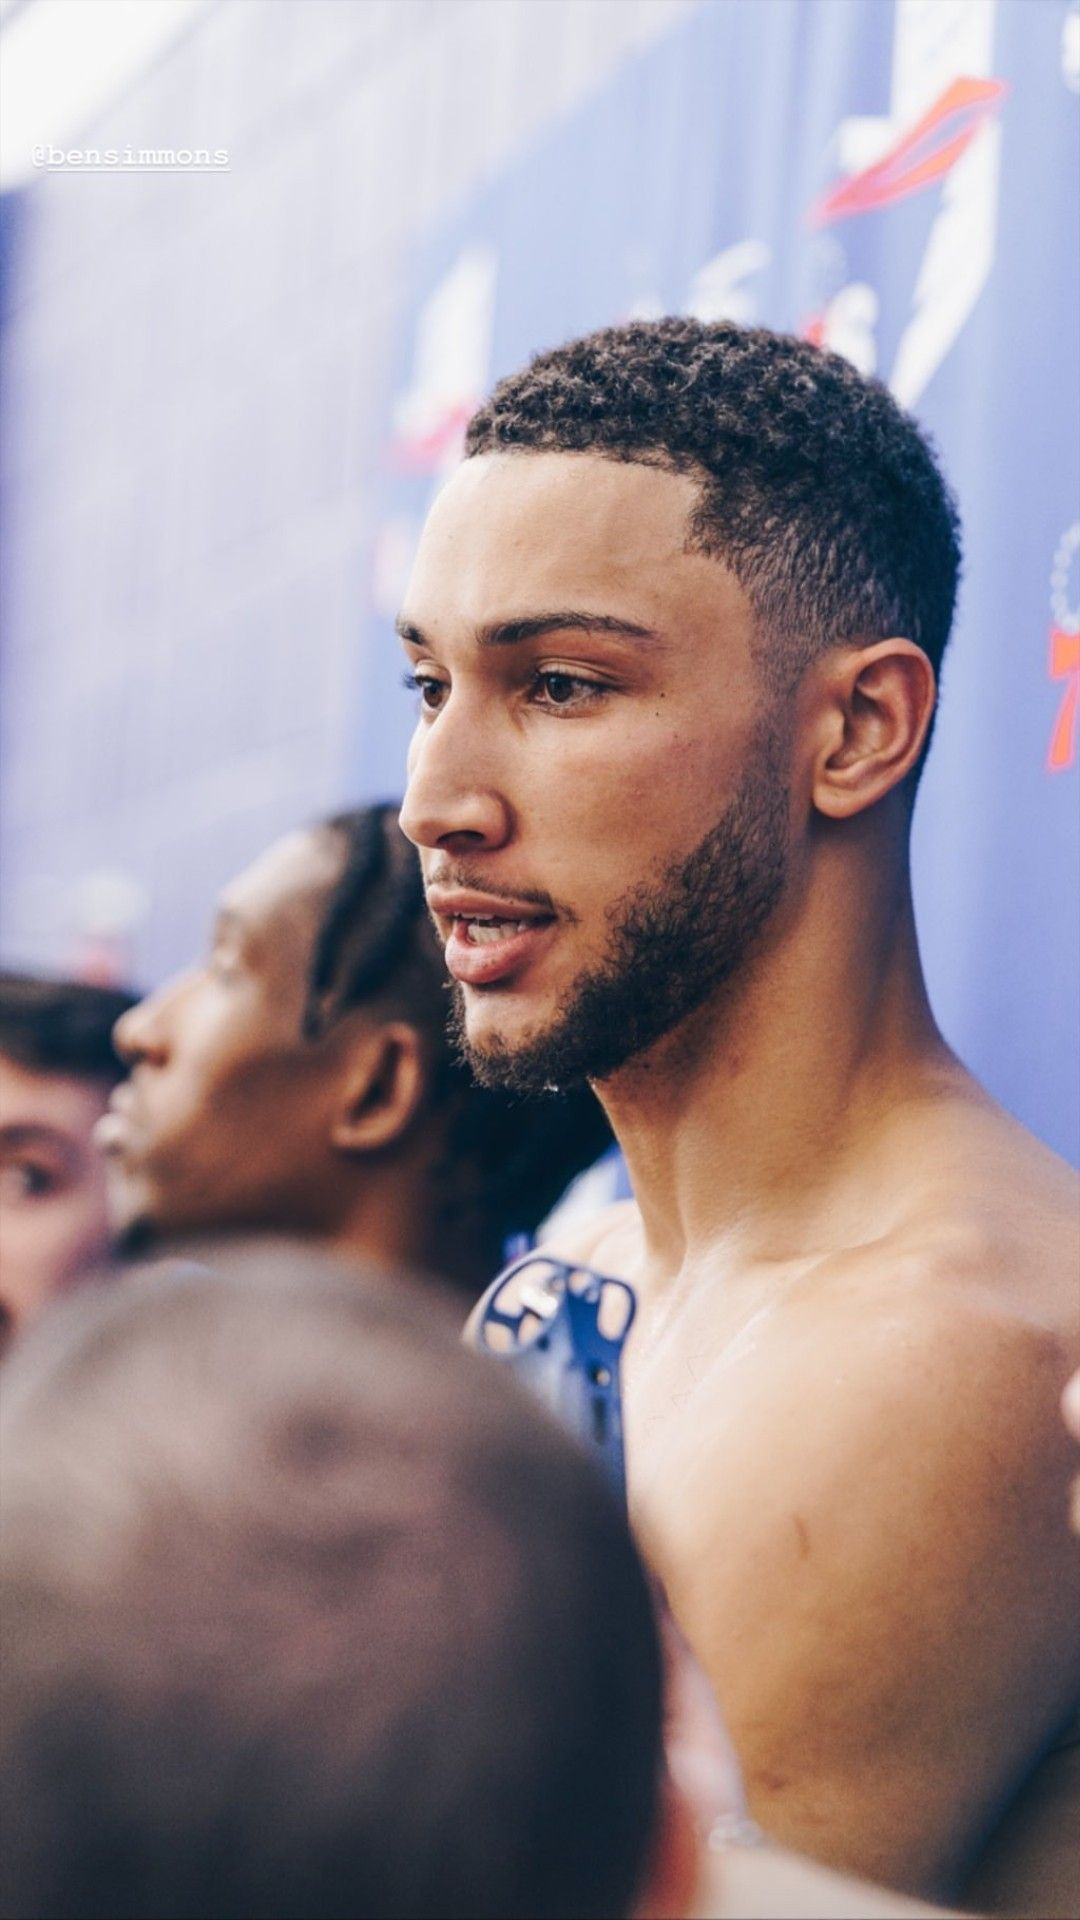 Pin by 💖💖 on My Love Ben simmons, Cute black boys, Simmons